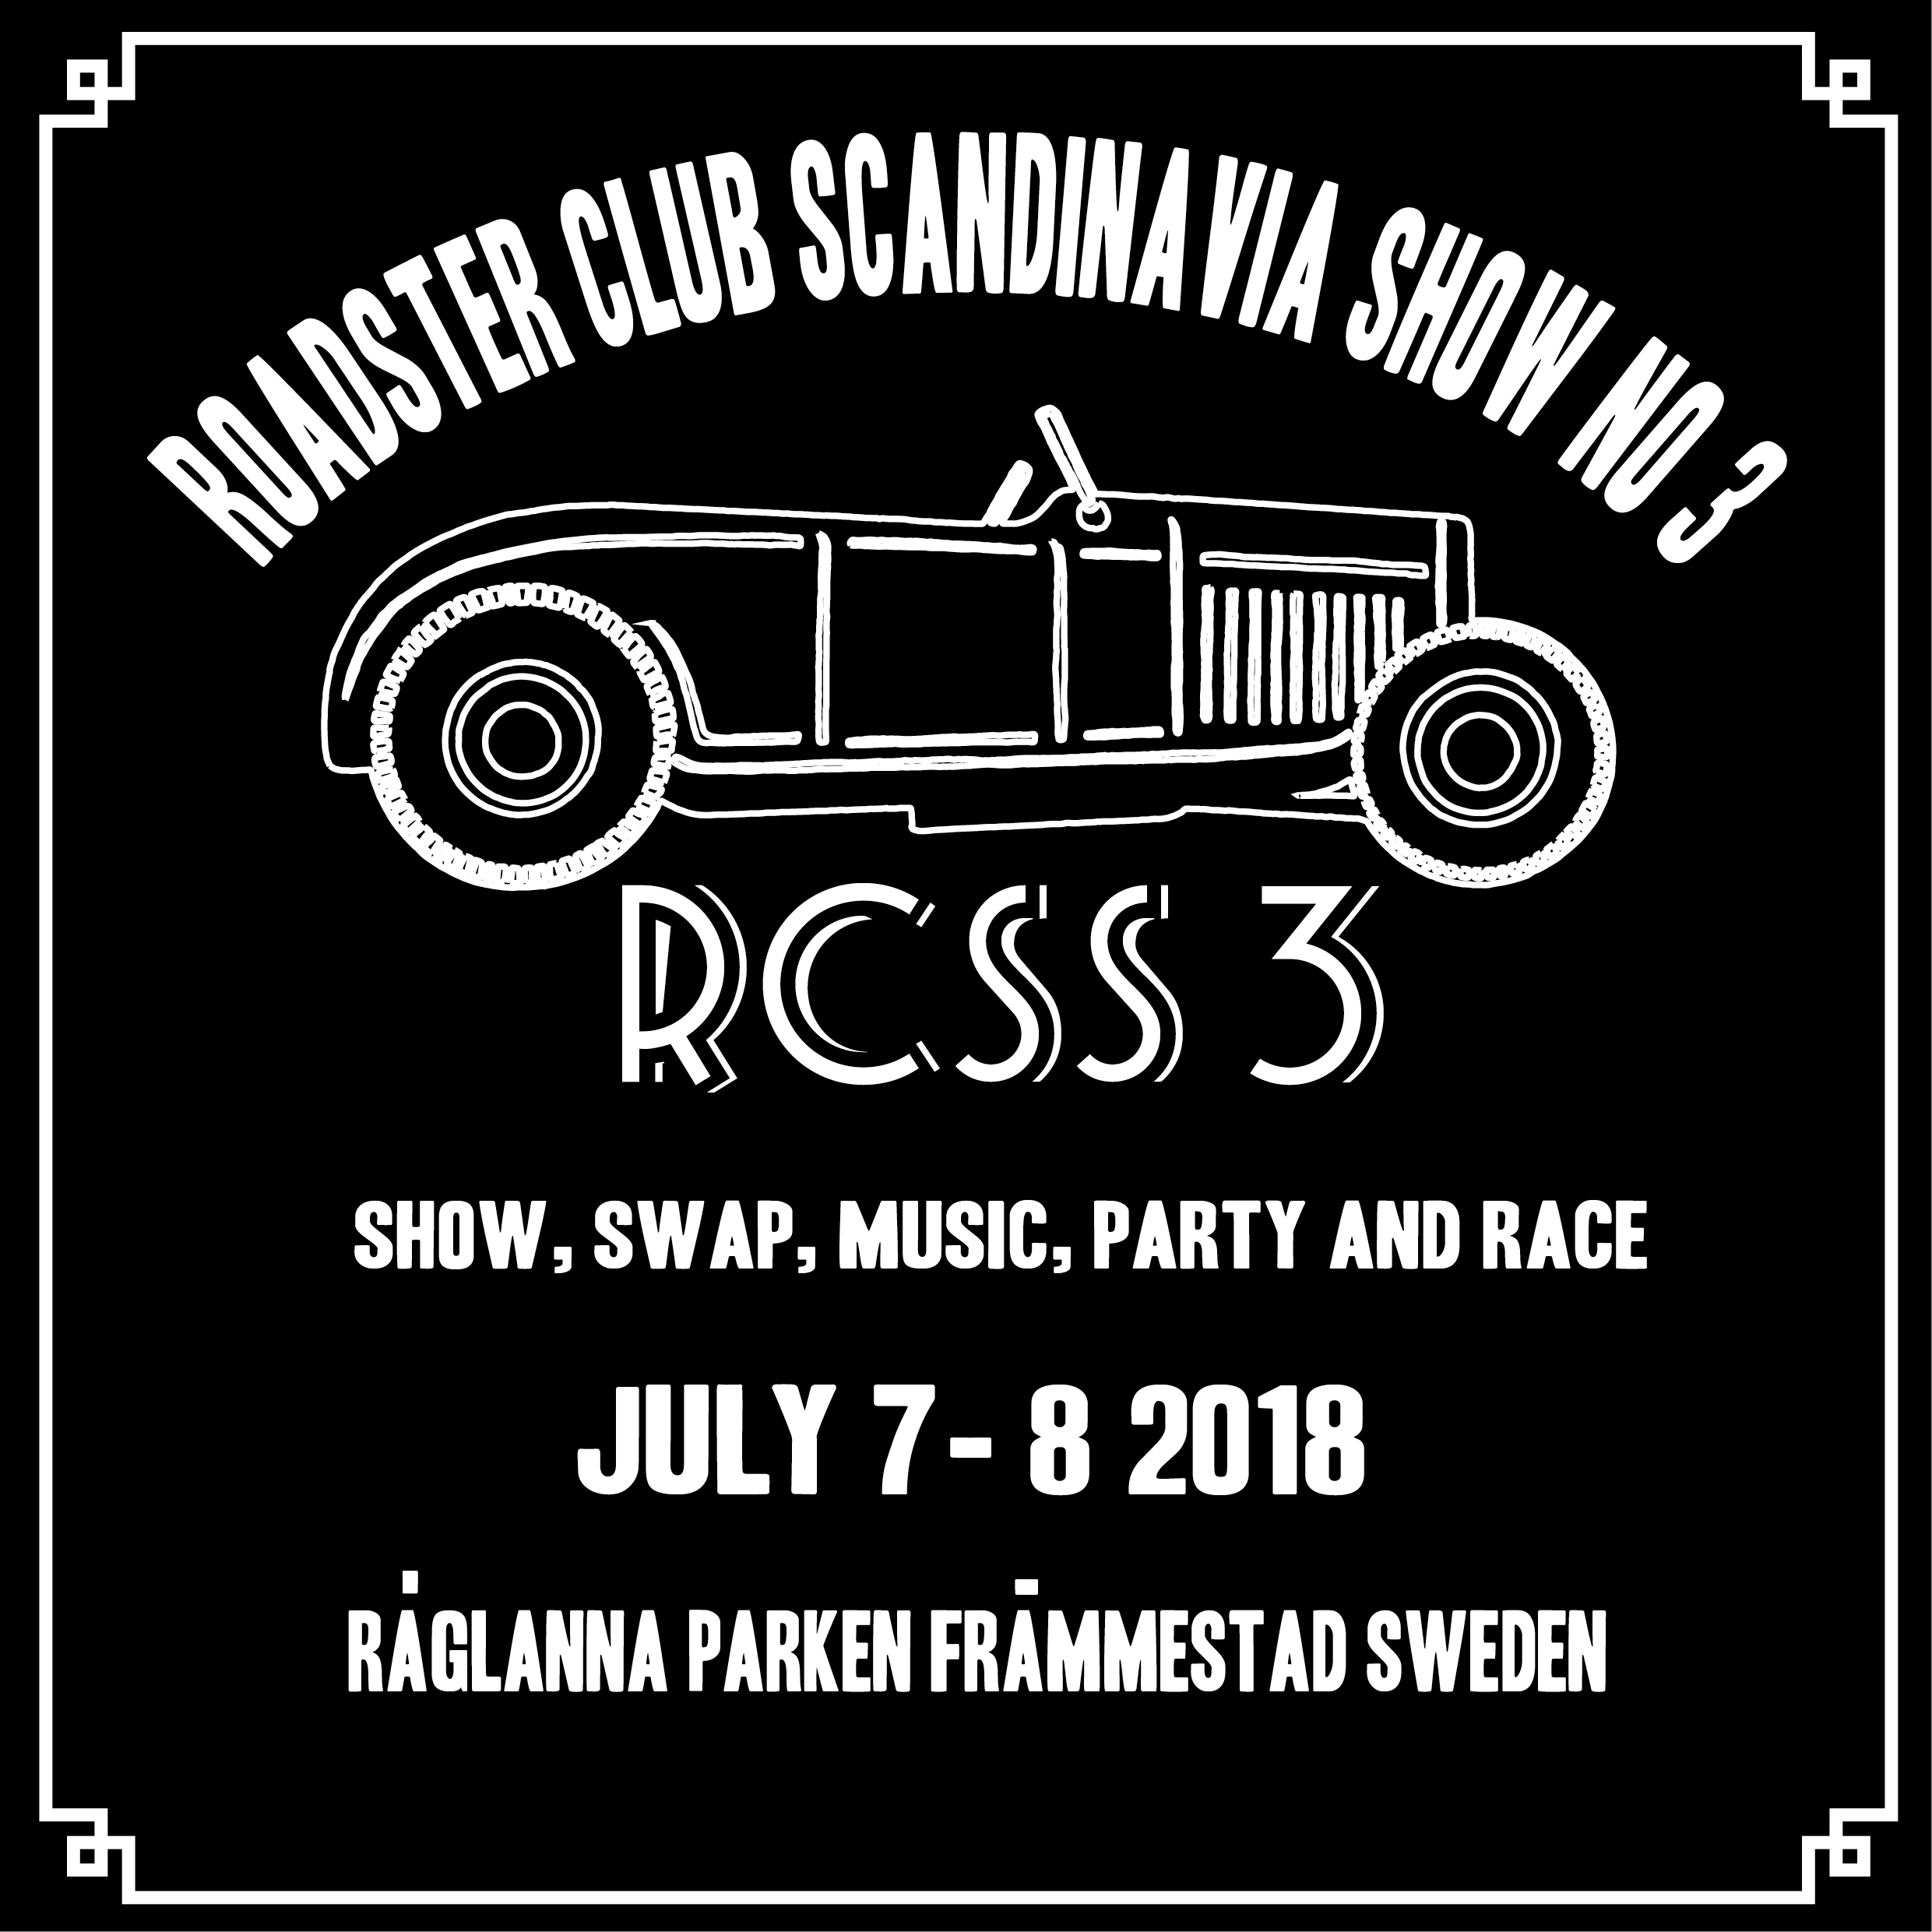 "Mark the date in your calendar! Same place as RCSS2: Råglannaparken SW Sweden. RCSS3 (Roadster Club Scandinavia Show #3)  7-8 Juli 2018 är det dags för vår show: RCSS3 För 2018 ökar vi ytterligare. Nu blir det race också!  Det blir alltså : Show, där vi utser: -Scandinavias most beautiful roadster -Scandinavias coolest roadster -Scandinavias peoples choice.  Race  I år kör vi ett dirt drag race på närmsta åkern ca 300 meter från festplatsen. Mer detaljerad info längre fram i brevet.  Det blir prisutdelning för både vinnarna i vår show och race med fina priser och spons från flera bra företag. (mer info om vilka som kommer sponsa kommer senare obs har du kontakter på företag som kan sponsa så hör av dig, kul om det blir mycket priser för vinnarna)  -Swap meet:  Alla kan ta med sig lite att sälja vid sin bil. Har man lite mer grejer, så tar man med ett bord. Inga loppis eller antikgrejer, bara hot rod relaterat.  -Exhibition Där kommer även finnas några andra utställare som säljer eller visar annat hot rod relaterat. Det kommer dock inte finnas kläd och pryl/lifestyleförsäljare Under dagen kommer det även förevisas annat hantverk: (mer info om detta kommer efter hand) Känner du något företag som du skulle tycka passa bra i denna genre så tipsa gärna.  -RCS meeting point där man bl.a kan köpa handtryckta träff t-shirts, member t shirts, klistermärken och andra RCS grejer.  Food: Det kommer att finnas hamburgare, mackor, kaffe, godis och dricka. Förhoppningsvis fixar vi käk intill racerbanan med. Det kommer även serveras frukostbuffé på söndagen.  Parken har en danspaviljong med stort tak utan väggar där man kan ta skydd om det kommer en skur. Det finns även andra tak där man kan sitta under och äta och fika. För inramningens och stämningens skull finns det dessutom ett chokladhjul inne i parken.  Party: Det kommer finnas livemusik och ett stort dansgolv.   Vi kommer, som sist, ha olika parkeringar för olika bilar: Inne i parken:  Medlemsbilar och andra traditionella hotrods upp till 1937, billet proof och med diagonaldäck, inga rat rods. Utanför parken blir det customs, andra hot rods och MC upp till 1957och camping (gräsplan), Andra bilar får hitta plats längre bort från parken. Denna träff är framförallt inte för åskådare utan för deltagare, för de som faktiskt åker dessa bilar.  Tid: Lördag 7e juli till söndag 8e juli. Exakt när vi öppnar grindarna har vi inte info om ännu men det blir troligen som förra året runt 11:00. Mer info om detta kommer efter hand.  Entré 200kr Medlem med giltigt medlemskort 150kr  Packlista: -Din hot rod -Giltigt medlemskort (om du vill komma in billigare) -Hot roddelar till swapet -Periodkorekta kläder (50tal och nedåt) är frivilligt förstås men kul. Pris till bäst klädda Tjej/Kille. -Stark dryck för den som vill (finns inte att köpa på plats dock finns ett systembolag i Nossebro, några km från parken -Tält och övrig campingutrustning för de som vill campa precis utanför parken (annars finns camping, vandrarhem och hotell i Nossebro) -Ta med regnkläder, för då blir det inget regn! -Gott partyhumör!   Följ oss på Facebook eller på  www.roadsterclubscandinavia.com  för löpande ny info. Vi lägger ut nyheter efter hand. Gå gärna in på Facebook och meddela att du kommer så blir det enklare att planera mat o.dyl.    Mer detaljer om racet.  Nu känner vi att vi äntligen kan ordna ett race, vi har egentligen velat göra detta från dag 1 men känt att vi måste växa långsamt men nu är det dags. Det handlar om ett kort Dirt drag race 1/16 mile (ca 100m). Racet kommer att vara bara 300 m från festplatsen på en åker bakom en lada på andra sidan vägen. Åkern kommer vara preppad, plogad, ringvältad, bultad och ev lite grusad i starten. Vi kommer att ha lite olika klasser, troligen 3 st: - Four banger - 6-8 cyl flat head - Toppventil Dessa är inte helt bestämda men troliga. Det som gäller annars är: - Bara traditionella hotrods upp till 1937 - Bara diagonalhjul är tillåtna - Hjälm, heltäckande klädsel och handskar - Brandsläckare snabbt tillgänglig i varje bil. - Det kommer vara en security check på varje bil. - Starten kommer att ske två och två bredvid varandra och flaggas av. - Man kommer få skriva på att detta bara är ett veteranrally som inte är en tävling. - Alla i race teamet måste vara periodkorrekt klädda (30-40s style) även funktionärer och fotografer. - Man kommer att få göra föranmälan och förbetalning (200skr) och bifoga info om bilen och även bilder. -Maila till oss din intresseanmälan. Vi kommer sedan skicka ut ett formulär att fylla i och skicka tillbaka. -Obs det är ett begränst anta platser för racet! Först till kvarn! Hör gärna av dig om du vill vara med som staff på racet. Mer detaljerad info om racet kommer efter hand. RCSS3 (Roadster Club Scandinavia Show #3)       7-8 July 2018 is the time for our show: RCSS3 For 2018 we will increase further. Now it's race too! It will be as follows:  Show, where we choose:  -Scandinavia's most beautiful roadster -Scandinavia's coolest roadster -Scandinavia's peoples choice  Race  This year we go for a dirt drag race on the nearest field about 300 meters from the venue. More detailed information later in the letter.  There will be awards ceremony for both the winners of our show and the race with great prizes and sponsorships from several good companies. (more info about who will sponsor will come later, if you have more contacts on companies that can sponsor please let us know, it's nice if there are a lot of prizes for the winners)  -Swap meet:  Everyone can bring a little to sell from their car. If you have any more stuff, then you bring your own table. No flea or antique, only hot rod related.  -Exhibition There will also be some other exhibitors selling or showing other hot rod related. However, there will be no clothes and gadgets / lifestyle sellers During the day there will also be other crafts: (more info about this coming in hand) Do you know any company that you would like to fit well in this genre, please feel free to contact us  -RCS meeting point where you can buy hand-printed hit t-shirts, member shirts, stickers and other RCS stuff.  Food: There will be hamburger, sandwiches, coffee, candy and drink. Hopefully we'll have sometin next to the race track as well. A breakfast buffet is also available on Sunday.  The park has a dance pavilion with a large roof without walls where you can take shelter if the sky opens up There are also other roofs where you can sit and eat and ""fika"". For the sake of the atmosphere there will also be a chocolate wheel inside the park.  Party: There will be live music and a big dance floor.  We will, as last time, have different parking spaces for different cars: Inside the park: Members cars and other traditional hotrods up to 1937, billet proof and with bias ply (diagonal) tires, no rat rods. Outside the park there are customs, other hot rods and MC until 1957 and camping (on the gras), Other cars may find a place further away from the park. This show is primarily not for spectators but for participants, for those who actually drive these cars.  Time: Saturday 7th of July to Sunday 8th of July. Exactly when we open the gates we do not have info yet but it will probably be like last year around 11:00. More info on this comes in hand Entrance 200kr Member with valid membership card 150kr  Packing list:  -Your hot rod -Full membership card (if you want to enter cheaper) -Hot rod parts for the swap. -Period-correct clothing (50th and down) is voluntarily of course but fun. Price for best dressed girl / boy. -Alcohol drinks for the one who wants (cannot be bought on site, however, there is a ""Systembolget"", liquor store, in Nossebro, a few kilometers from the park -Tent and other camping equipment for those who want to camp just outside the park (otherwise camping, hostel -Bring rainwear, because then there will be no rain! -Good party mood!    Follow us on Facebook or at  www.roadsterclubscandinavia.com  for ongoing news. We publish news by hand. Feel free to post on Facebook and announce that you will make it easier to plan food etc   More details about the race.  Now we feel we can finally arrange a race, we really wanted to do this from day one but felt we must grow slowly but now it's time. It's about a short Dirt drag race 1/16 mile (about 100m). The race will be only 300m from the party site on a field behind a barn on the other side of the road. The field will be prepared, plowed, ring-rolled, bumped and possibly a little gravelled at the start. We probably have a couple of classes: - Four banger - 6-8 cyl flat head - Overhead valve. These are not entirely determined but likely. What else: - Only traditional hot rods up to 1937 - Only bias ply tires are allowed - Helmet, comprehensive clothing and gloves - Fire extinguisher quickly available in every car. - There will be a security check on each car. - The start will be two and two next to each other and flagged off. Everybody will sign to that this is only a veteran rally, not a competition. - Everybody in the race team must be periodically dressed (30-40s style) even functionaries and photographers. - You will have to pre book and prepay (200kr) and attach information about the car and also pictures. -Mail us if you want to race. We will then send out a form to fill in and send back. -Note, there is a limited assumption for the race! First come! If you want to join as staff member during the race, please let us know. More detailed info about the race will be handed our later.  More info later. Keep checking out our web, insta and facebook."